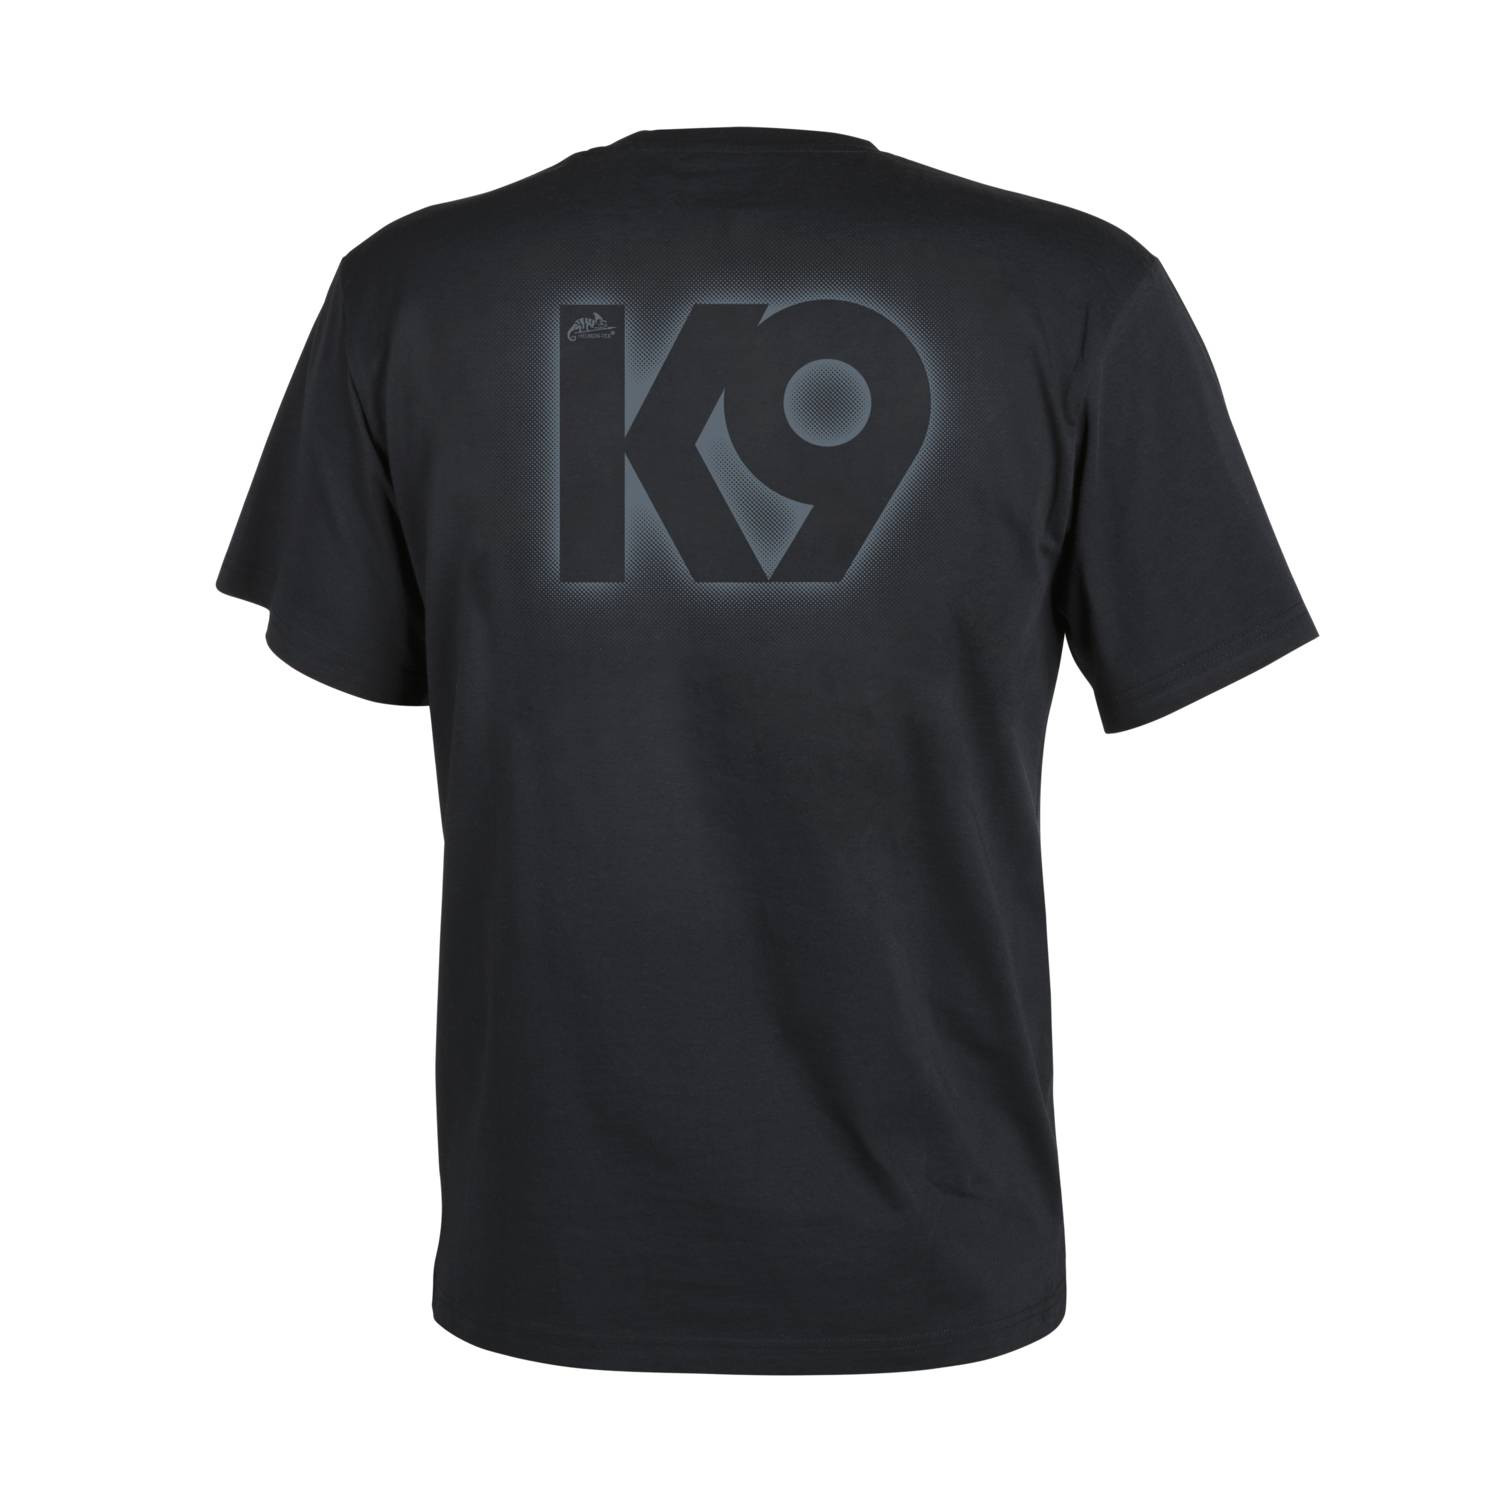 T-Shirt (K9 - No Touch) Detal 3